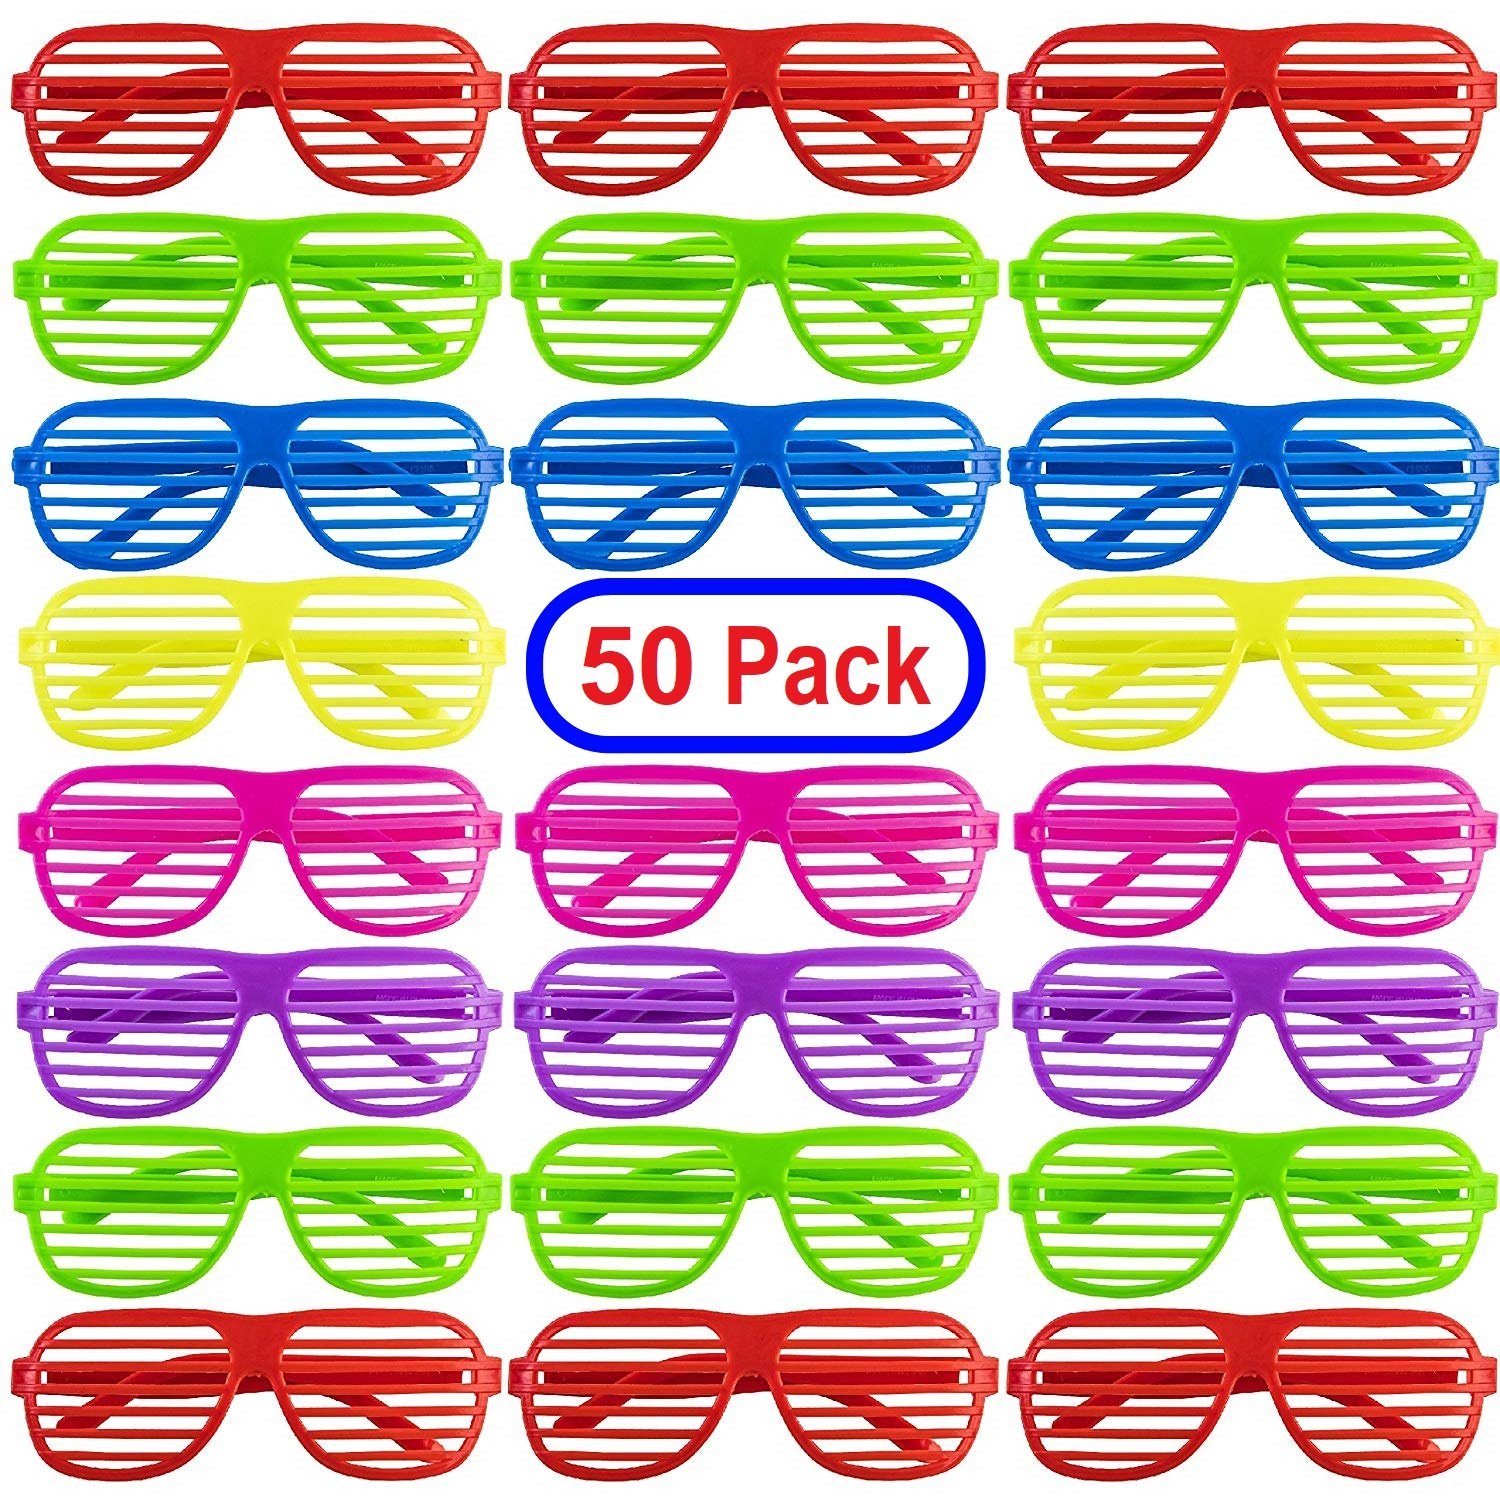 Mega Pack 50 Pairs of Plastic Shutter Shades Glasses Shades Sunglasses Eyewear Party Favors and Party Props Assorted Colors